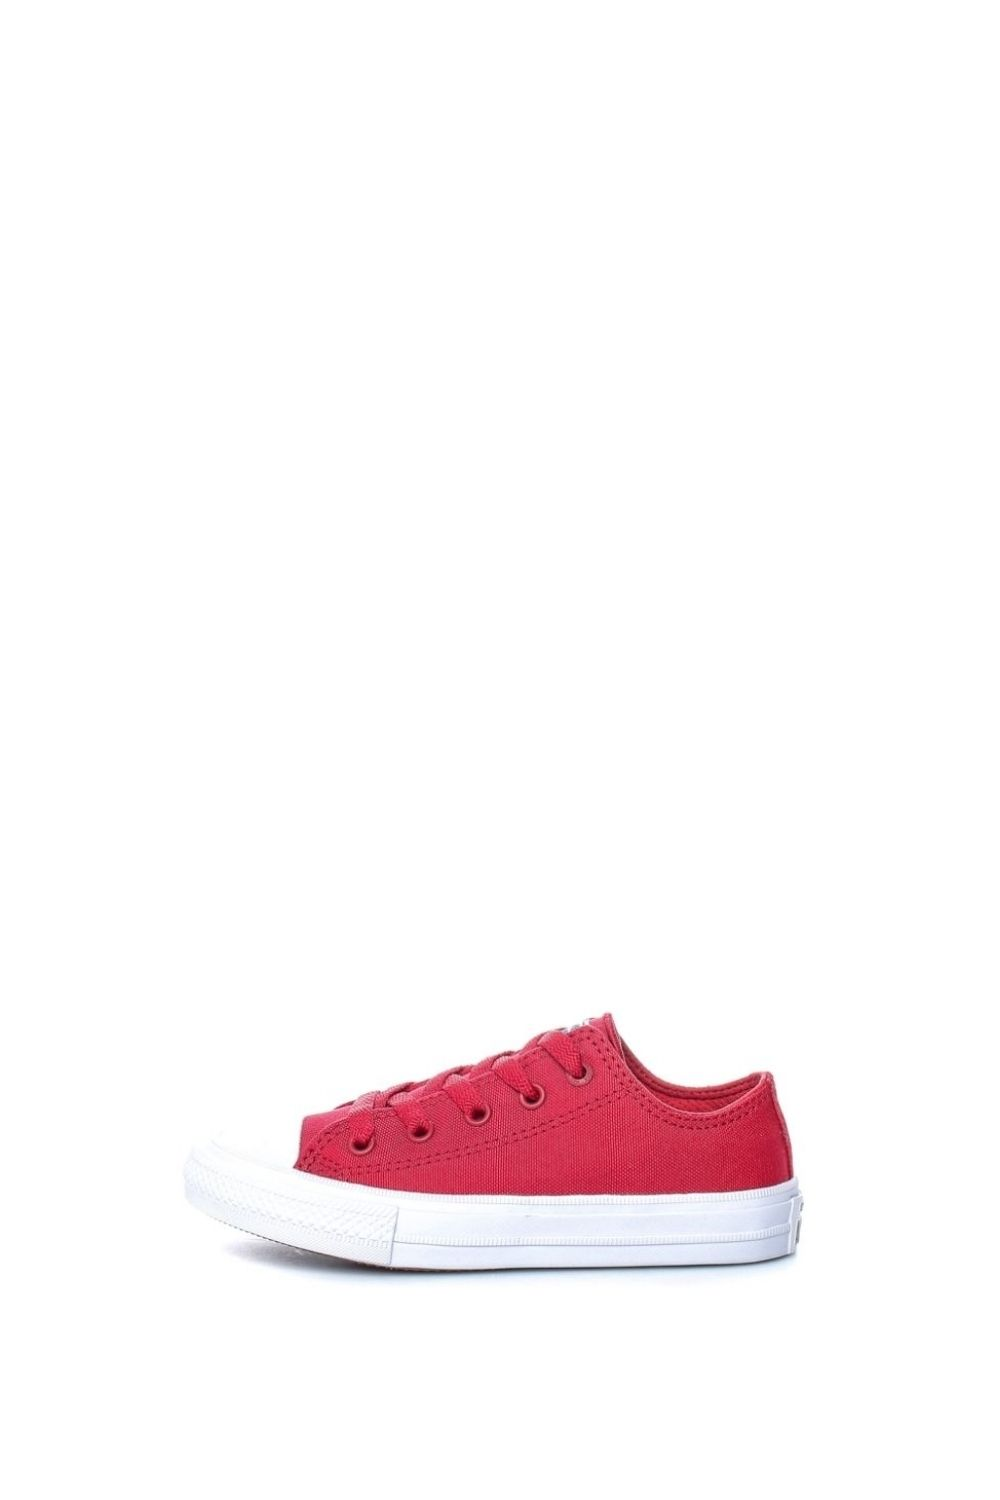 CONVERSE – Παιδικά sneakers CONVERSE Chuck Taylor All Star II Ox κόκκινα